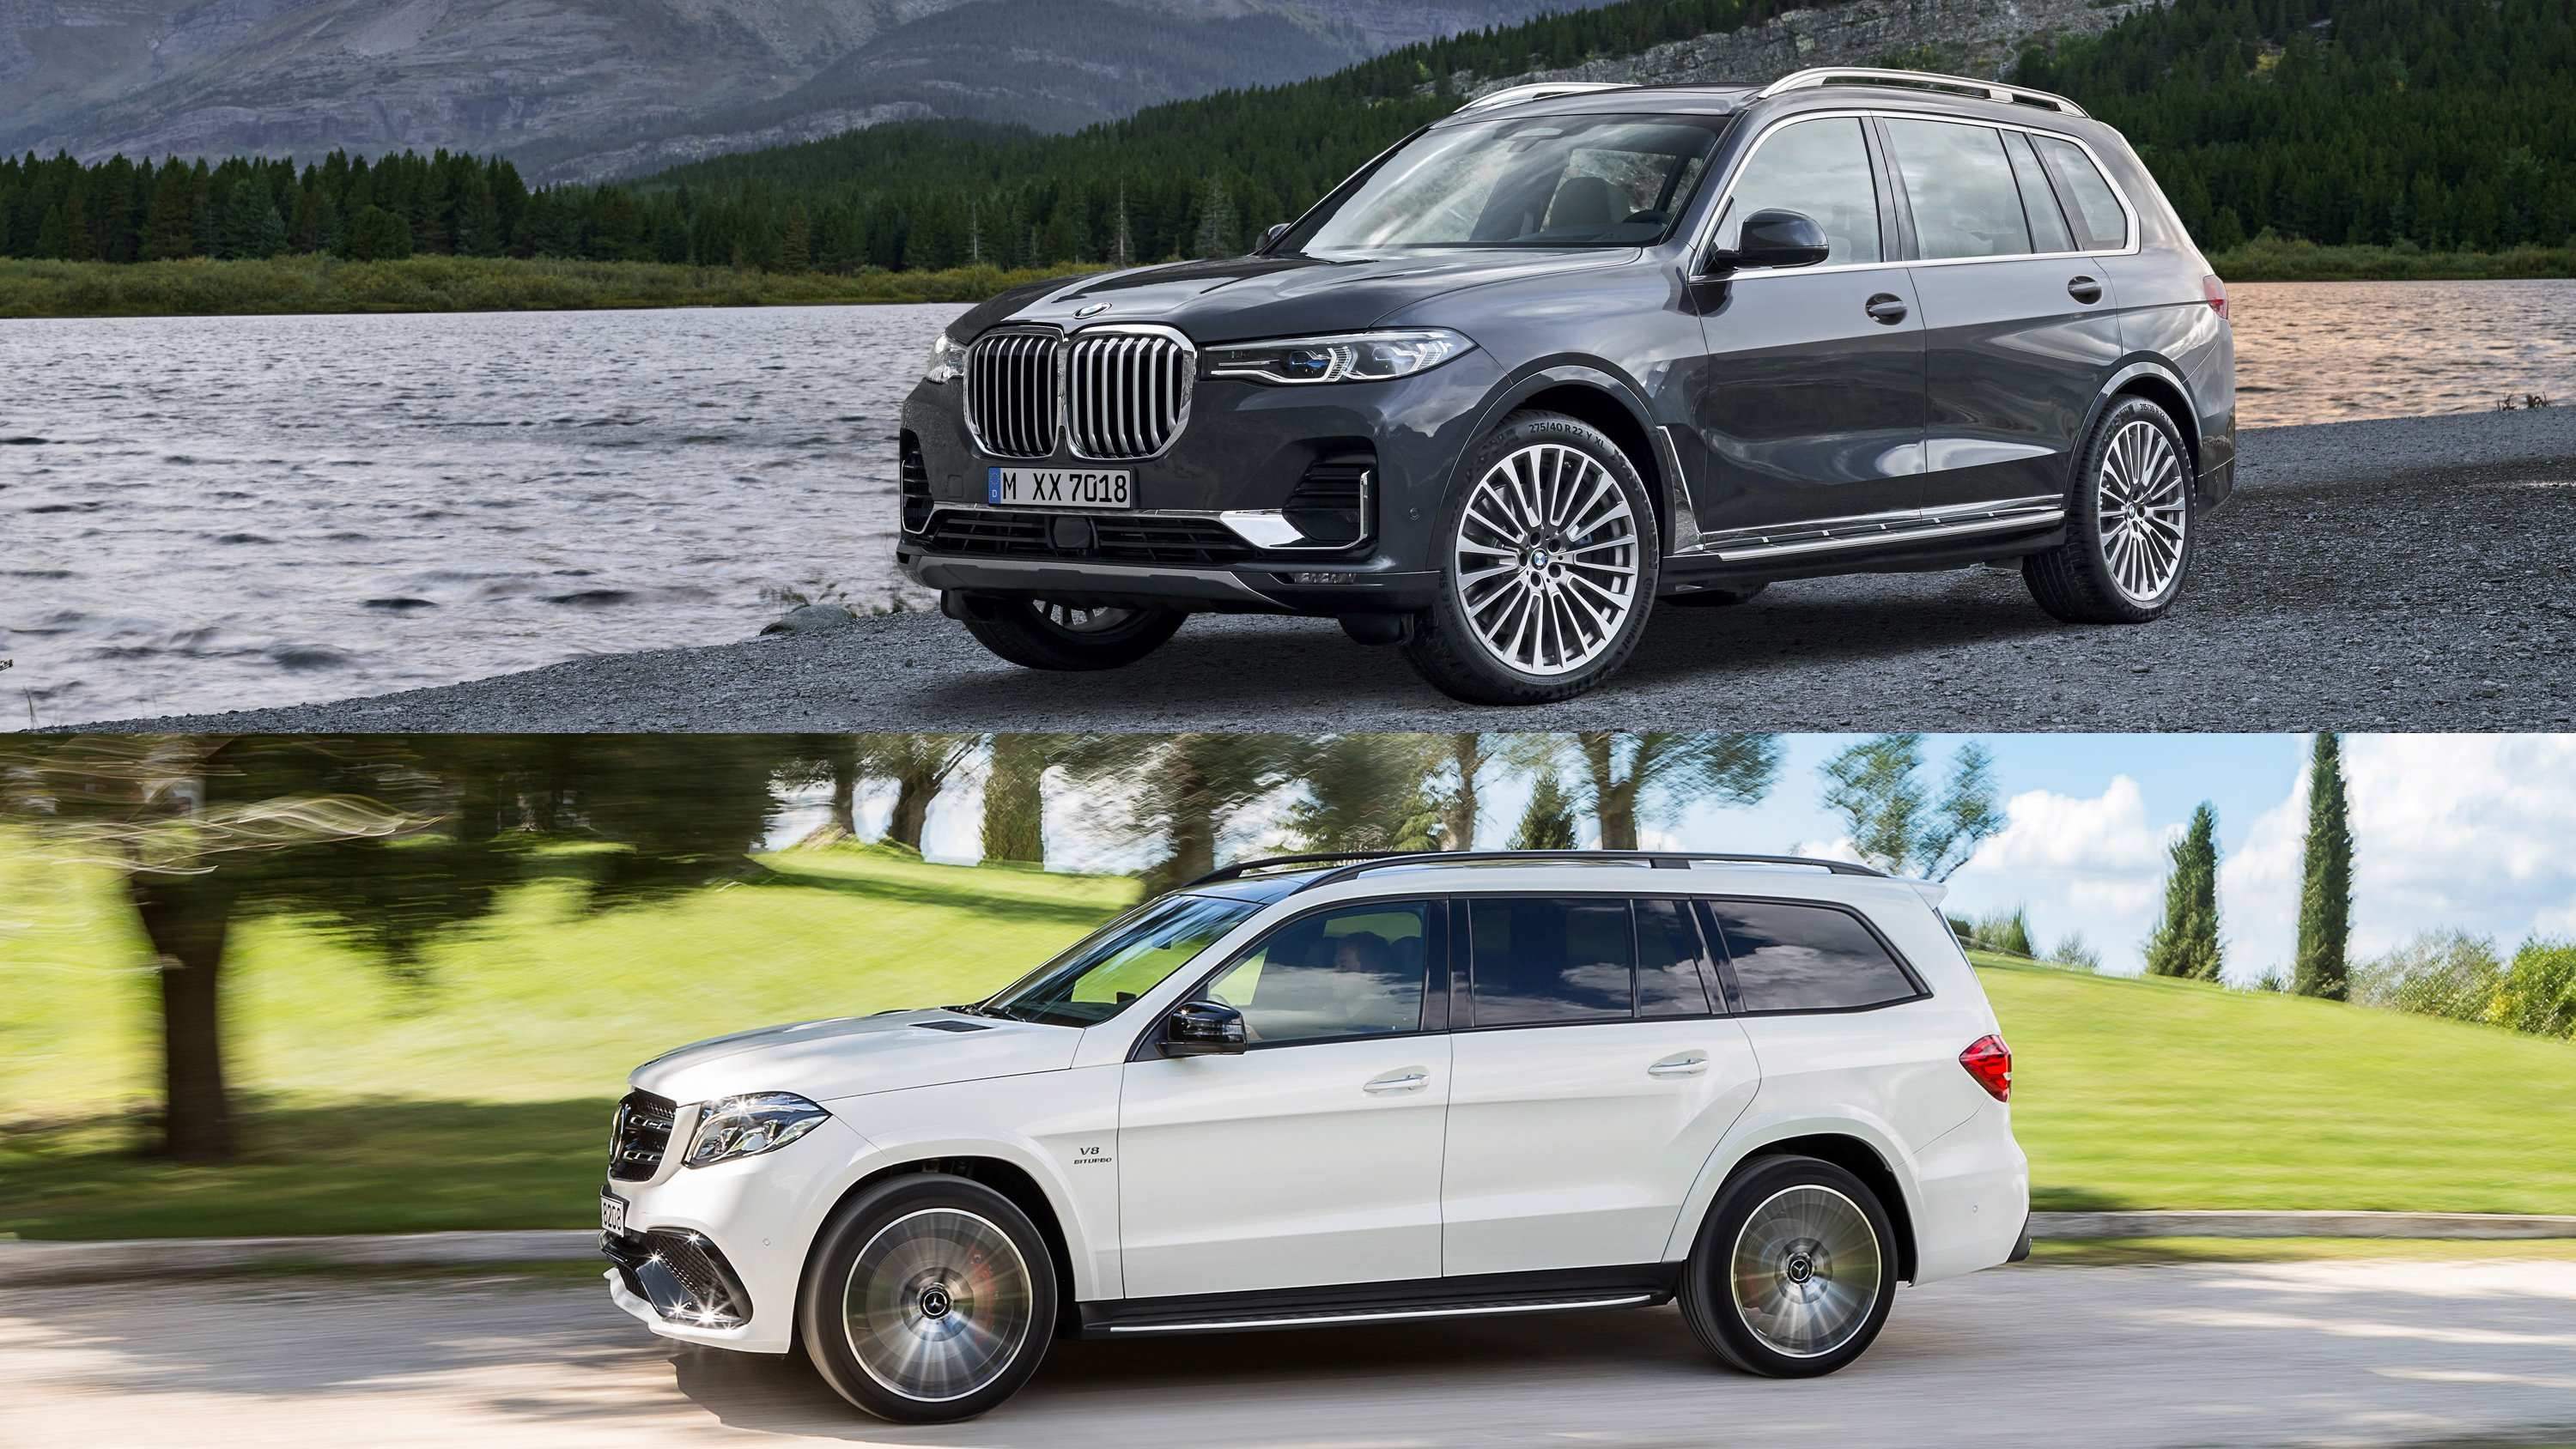 20 The BMW X7 Vs Mercedes Gls 2020 Redesign